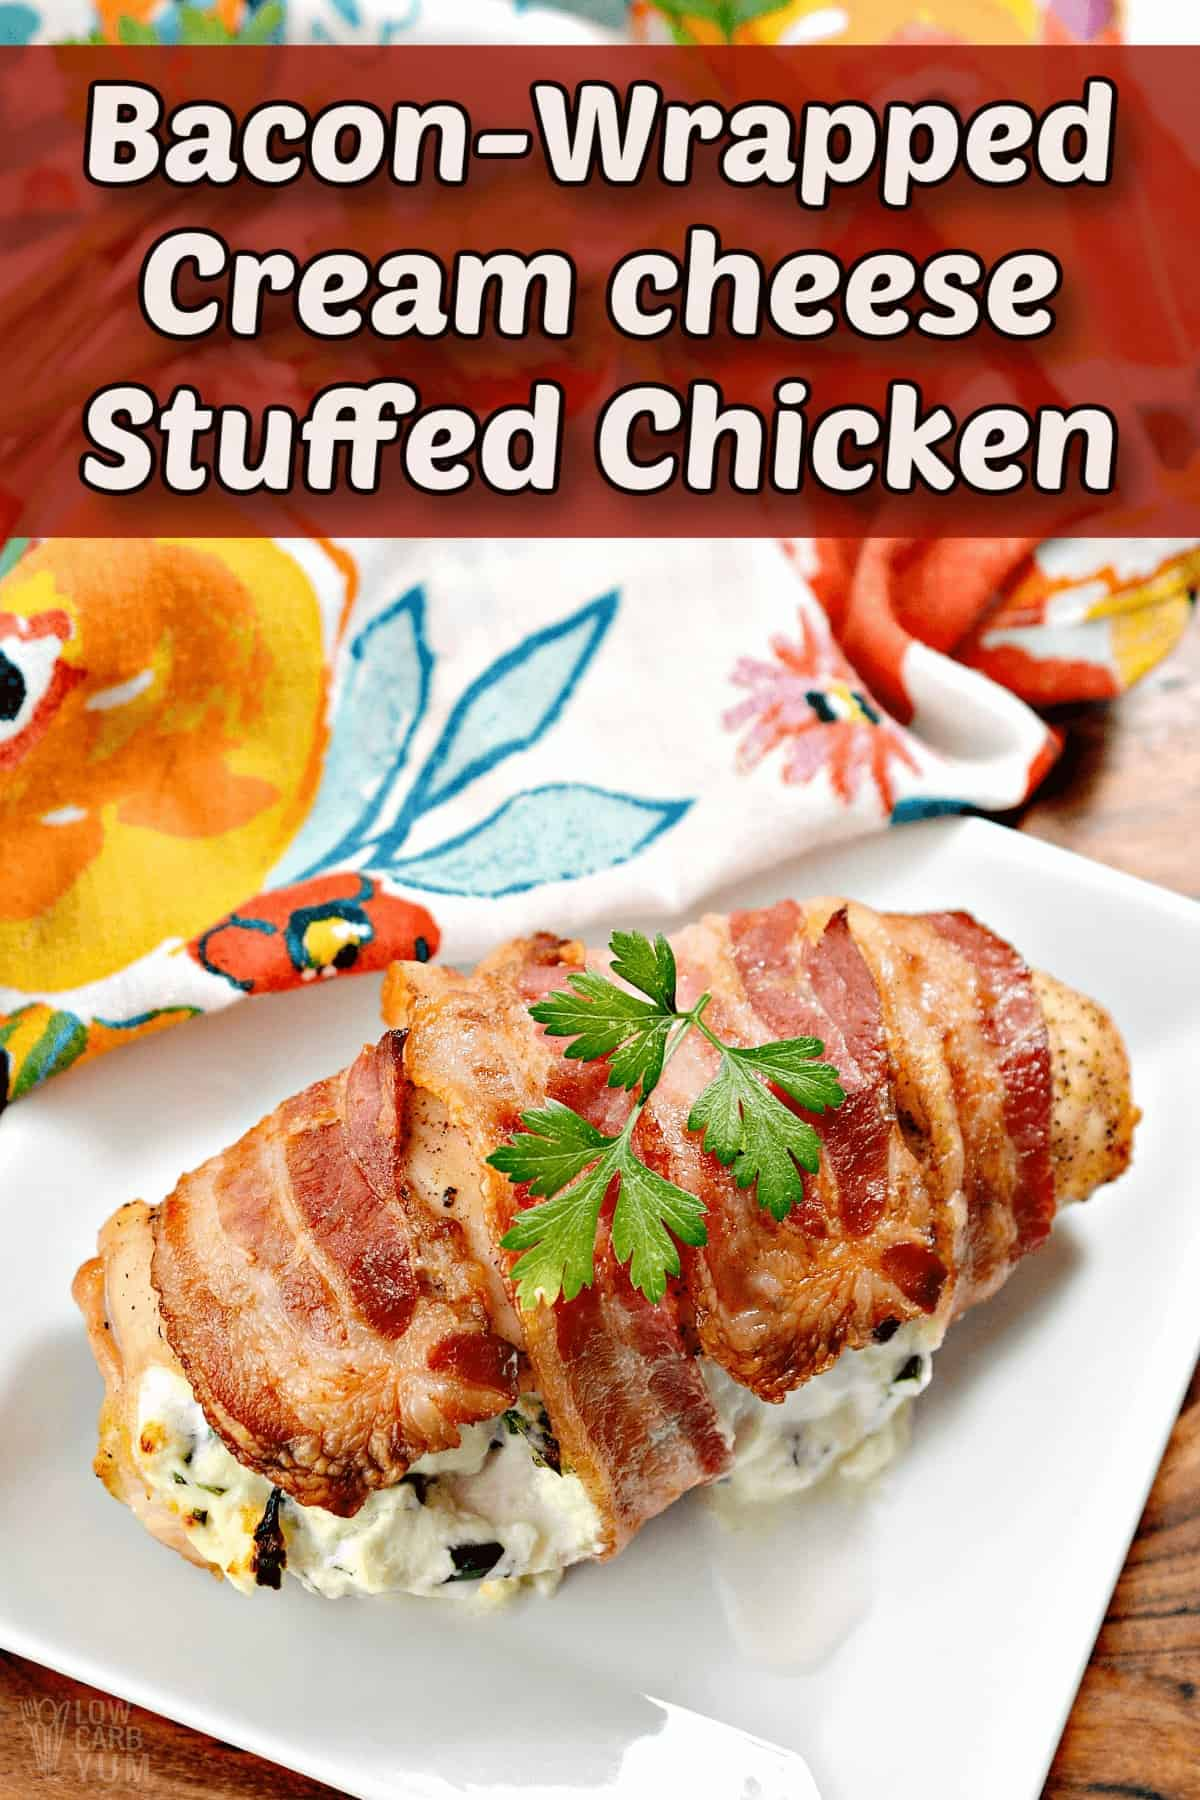 bacon wrapped cream cheese stuffed chicken pintrest image